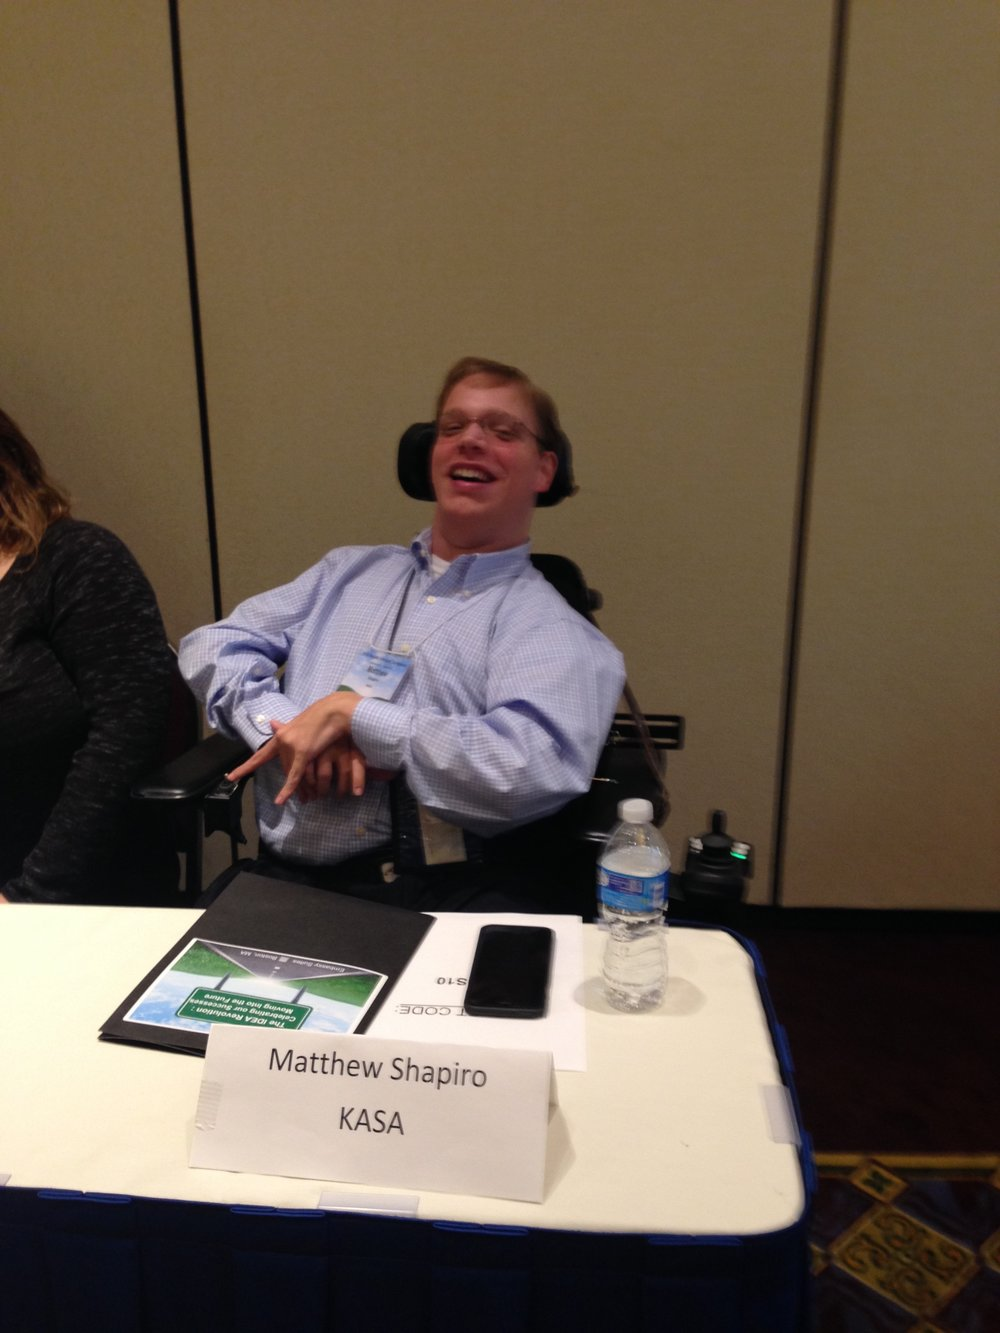 PHOTO: Matthew smiles for the camera as he awaits the start of the Youth involvement breakout strand at the NEPACT Region 1 annual conference in Boston Massachusetts.  A group of 8 panelist was there to discuss how the parent centers in region one could get more youth involvement in their projects.